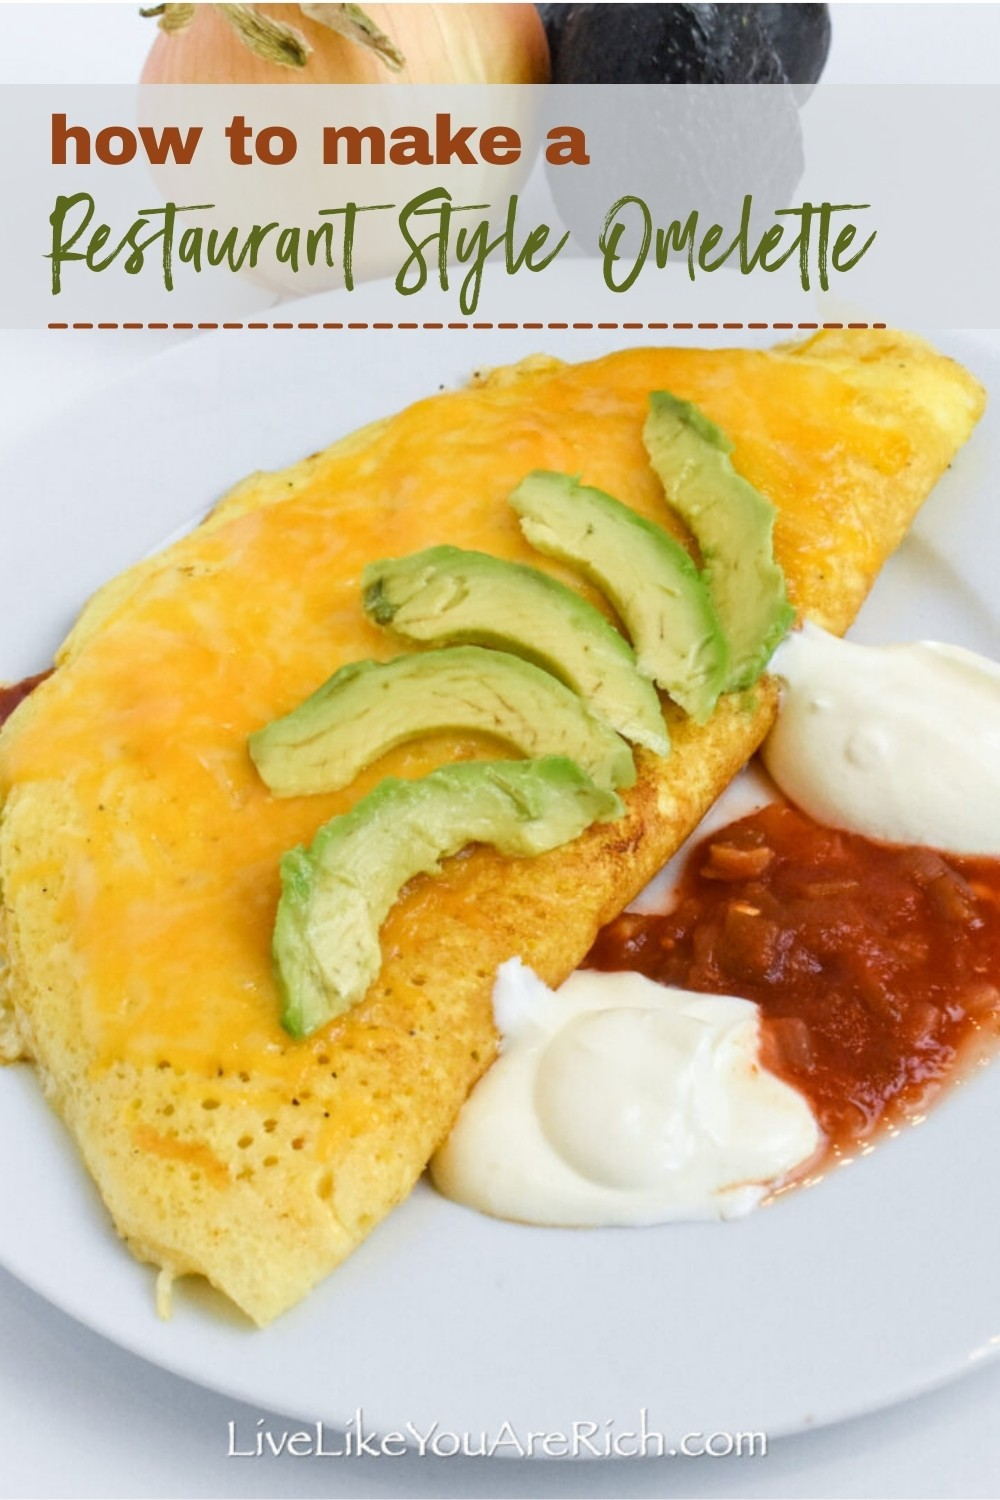 A delicious-tasting omelette that is fluffy and not over or under cooked. Serve with salsa, sour cream, guacamole, ketchup, tabasco or any other toppings you desire.